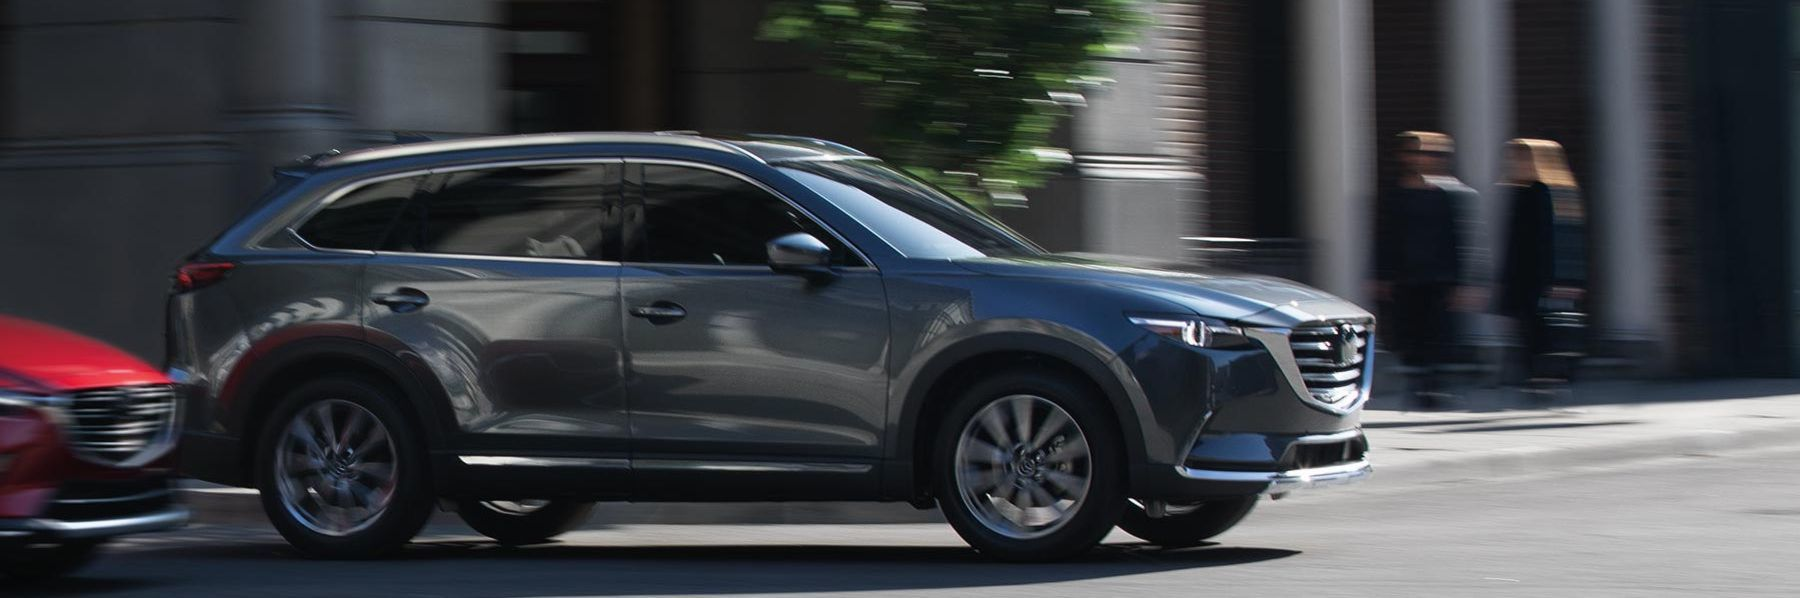 2019 Mazda CX-9 for Sale near Lodi, CA